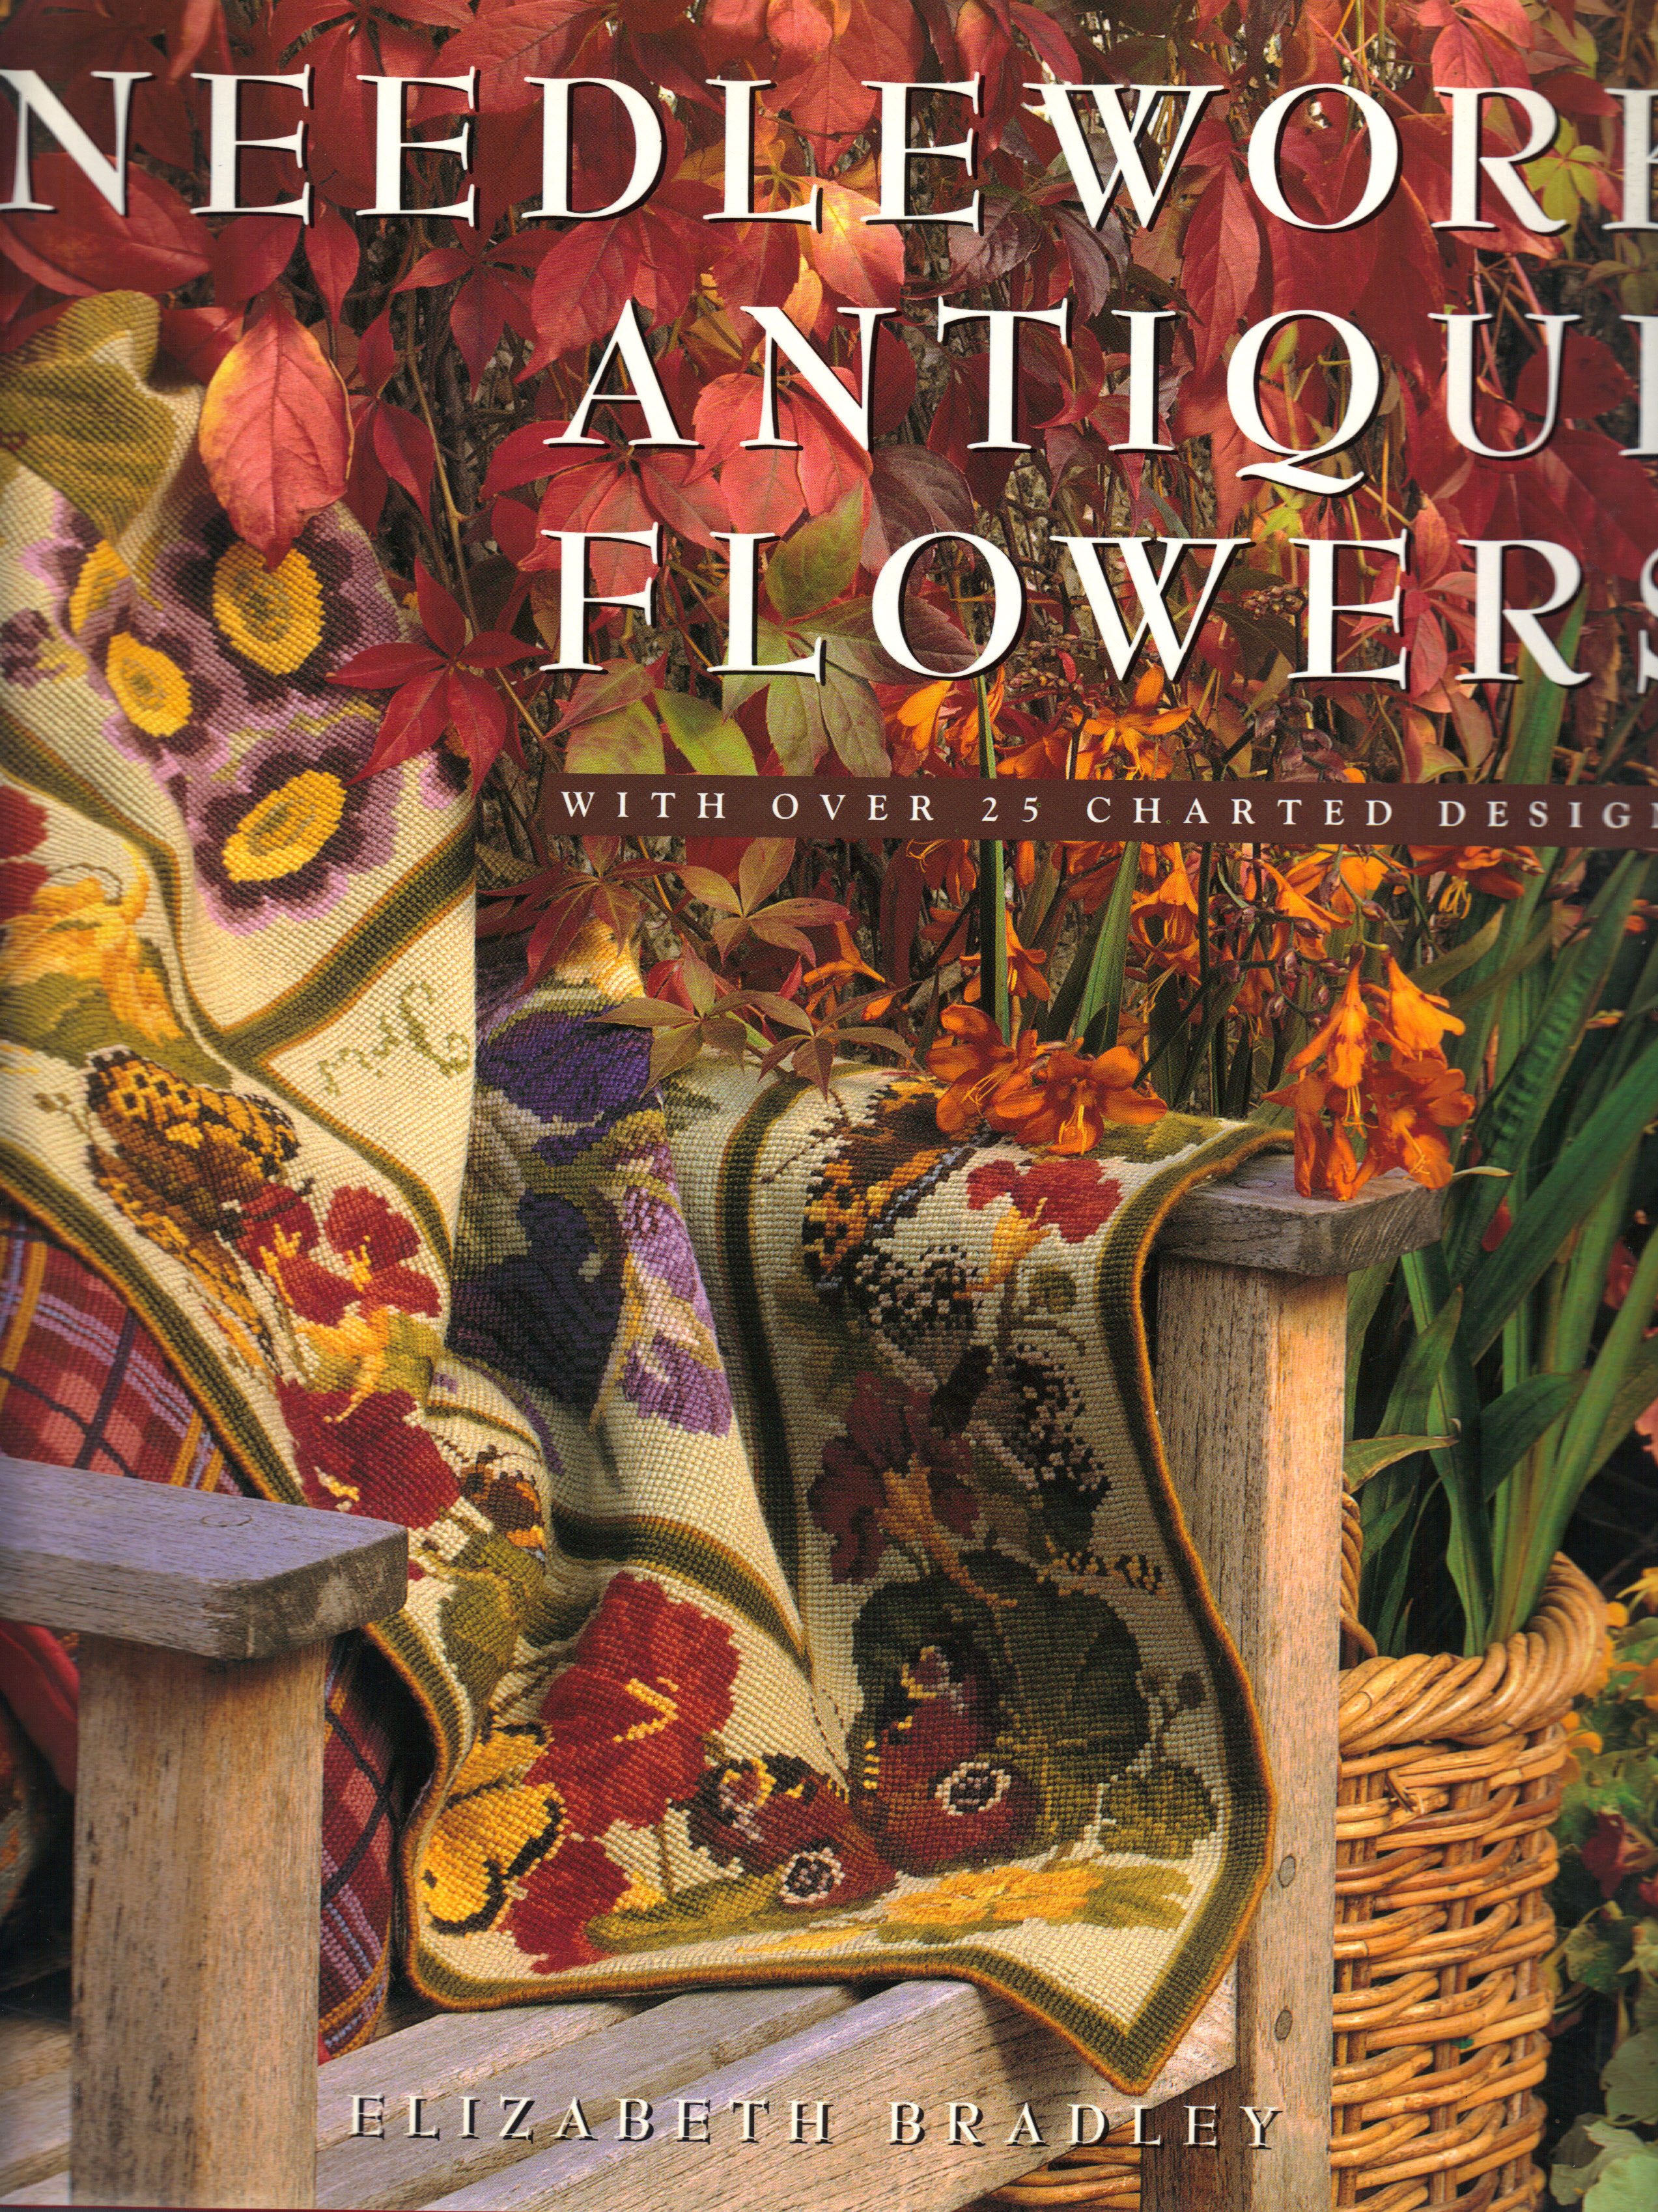 Image for NEEDLEWORK ANTIQUE FLOWERS ~ With Over 25 Charted Designs